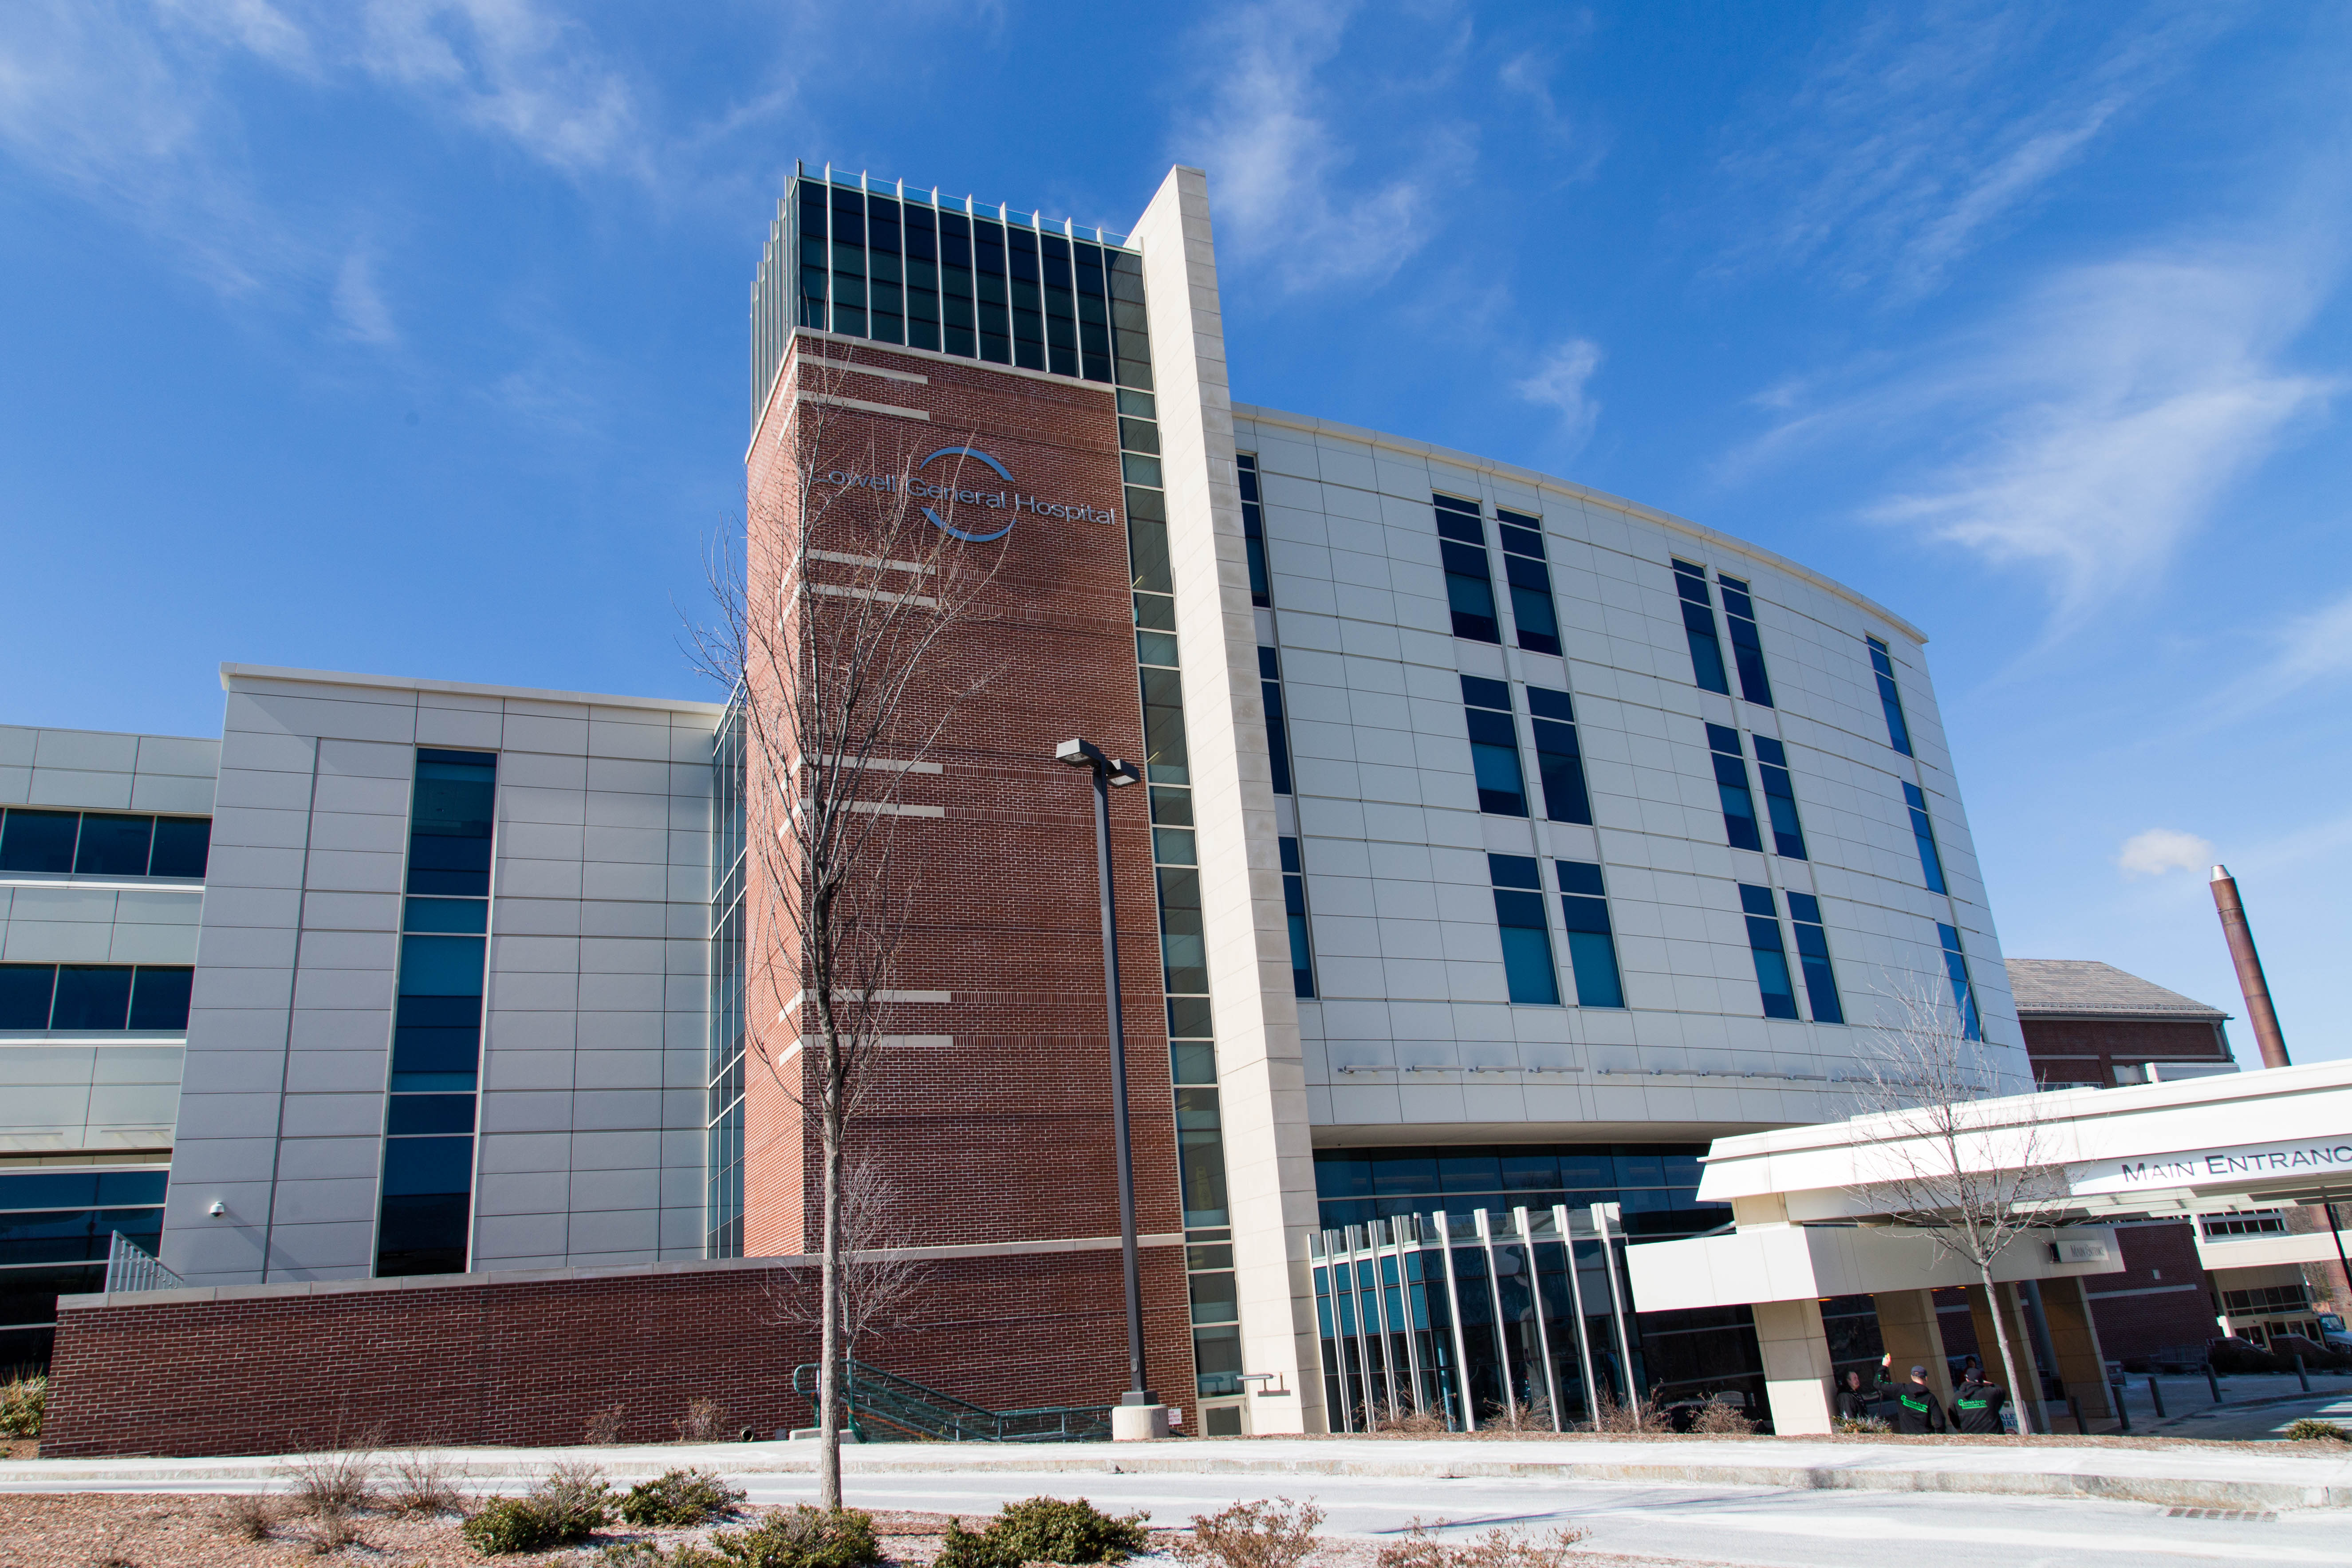 Lowes General Hospital Facility